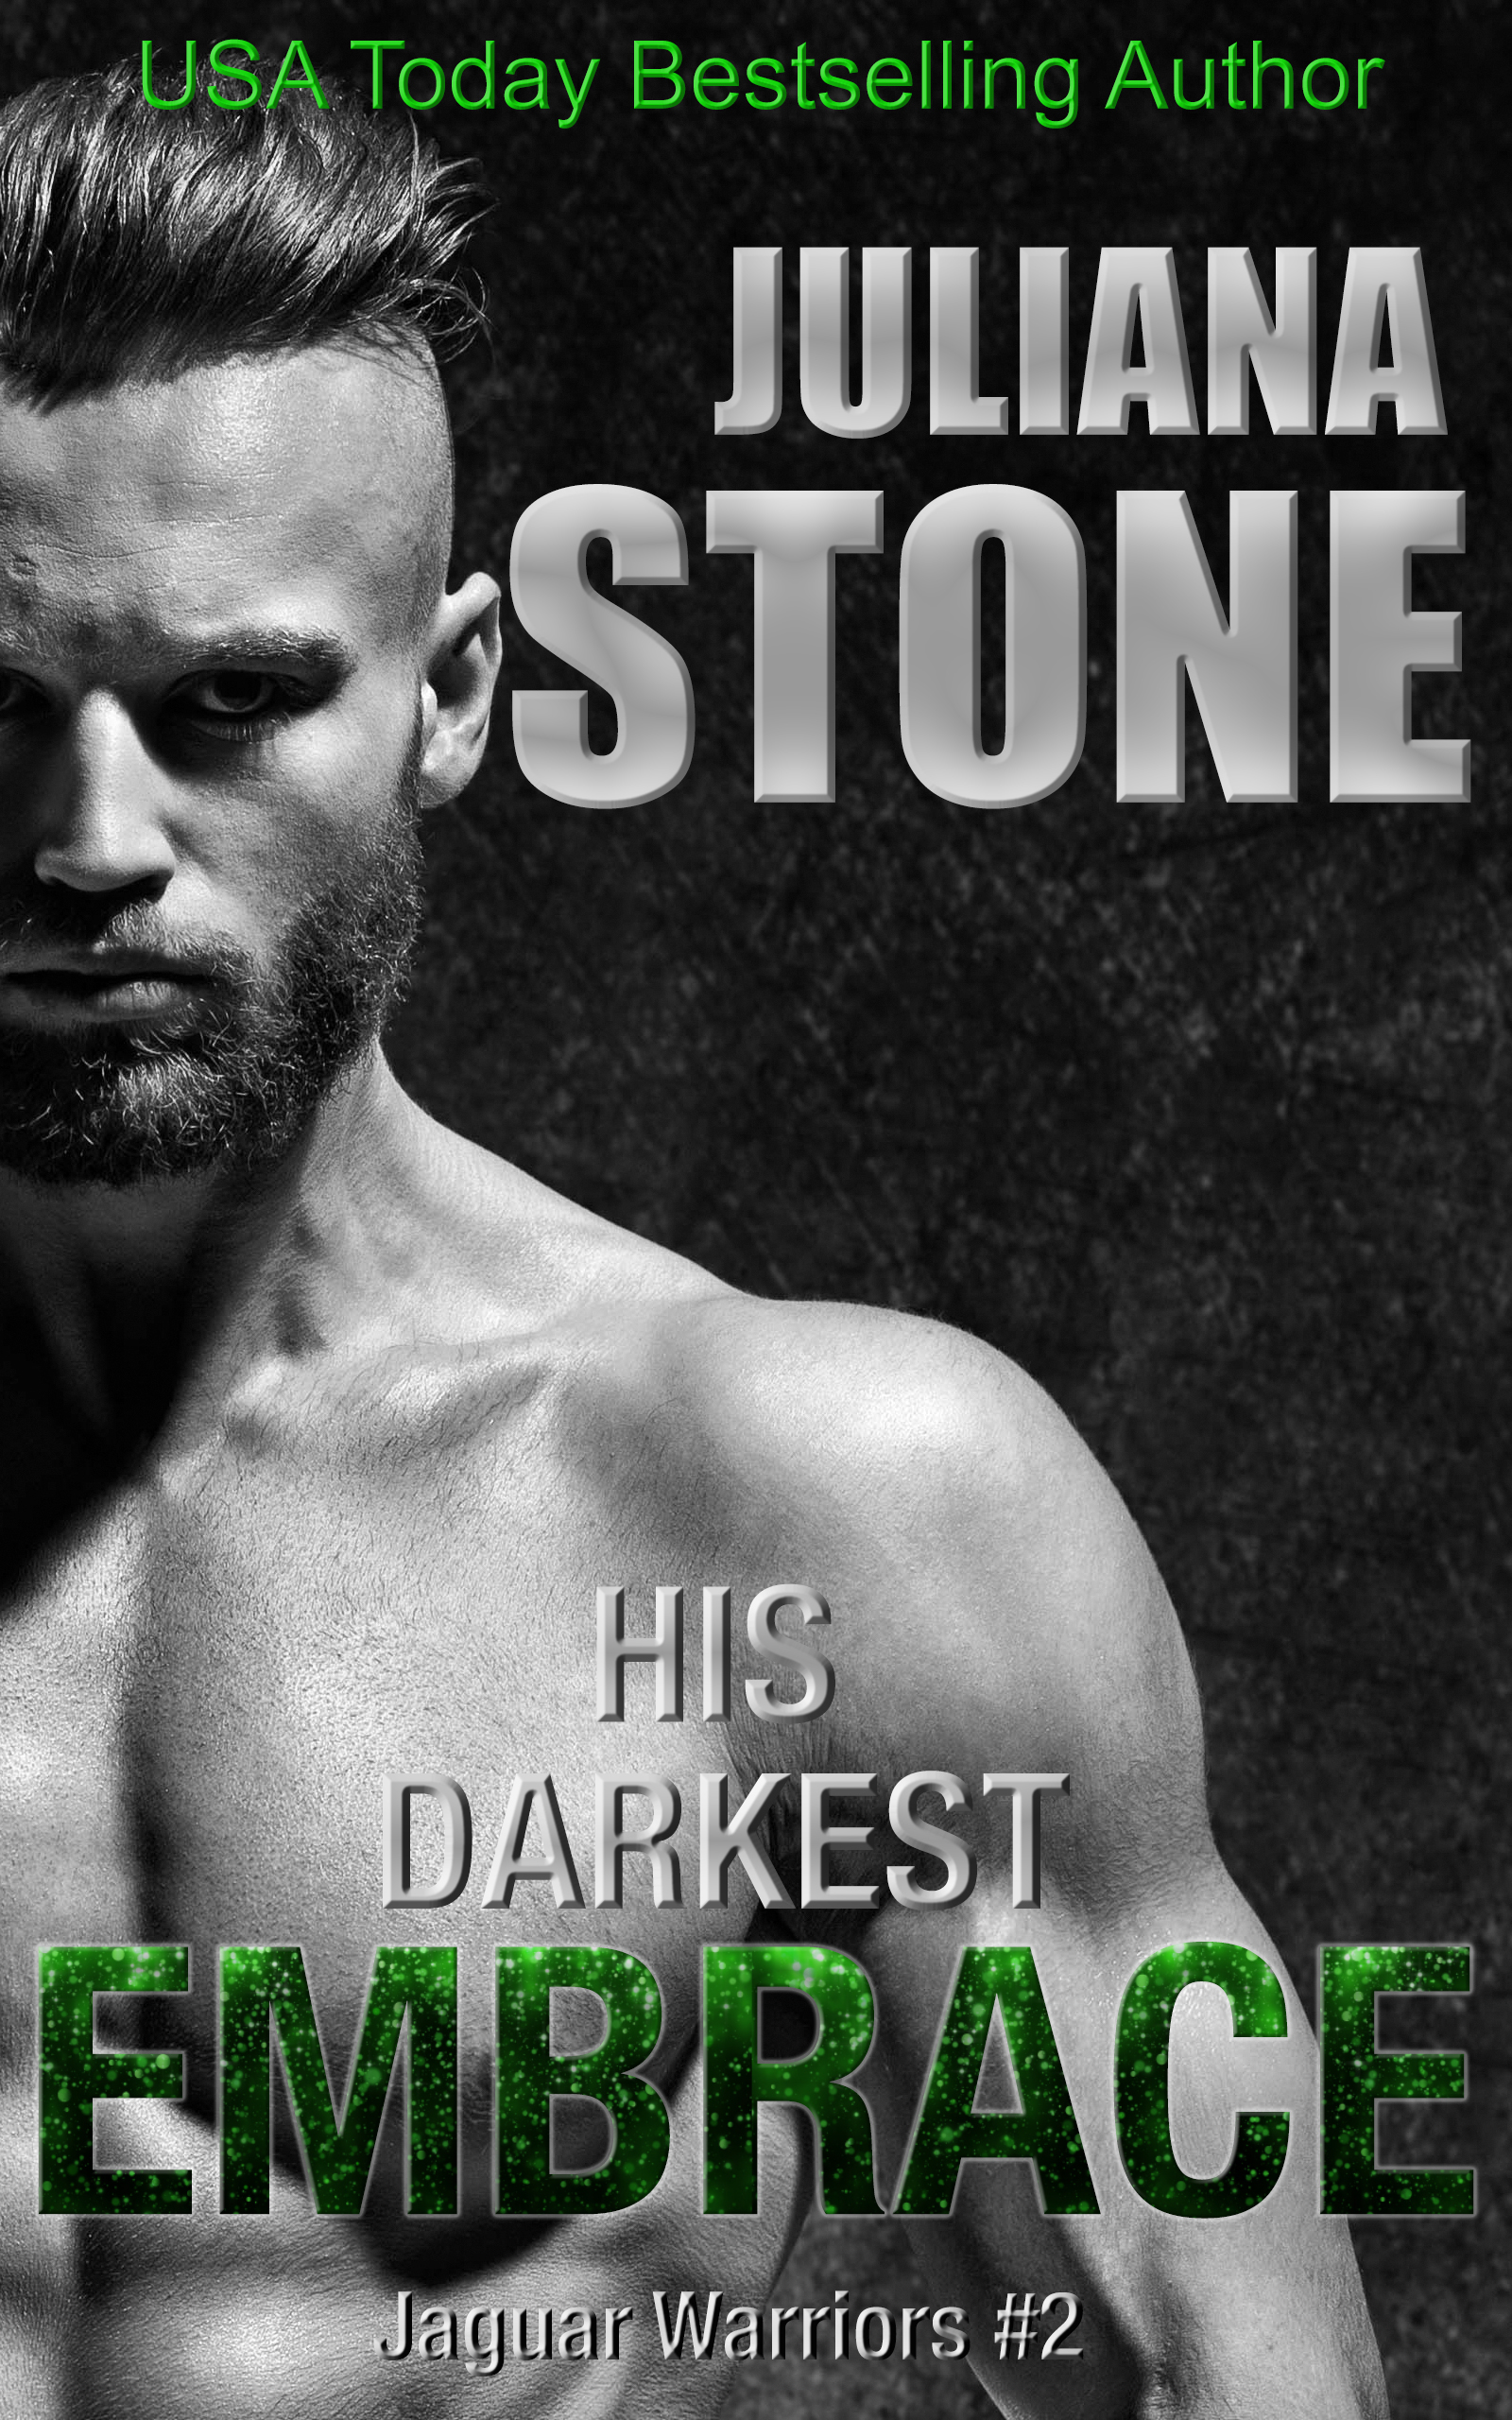 His Darkest Embrace by Juliana Stone